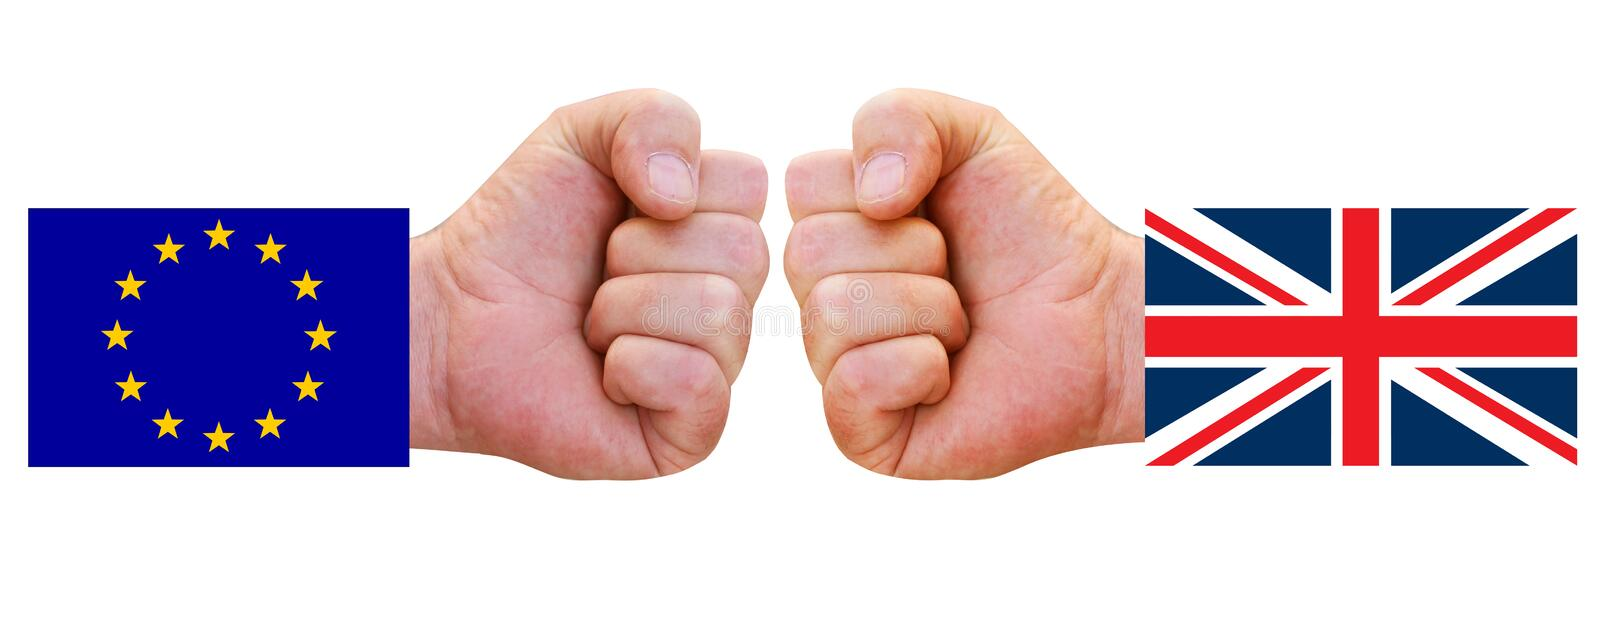 Flags of UK and EU with clenched fists punching out against each other. Brexit concept. Symbolizing conflict between European unio. N and United Kingdom royalty free stock image